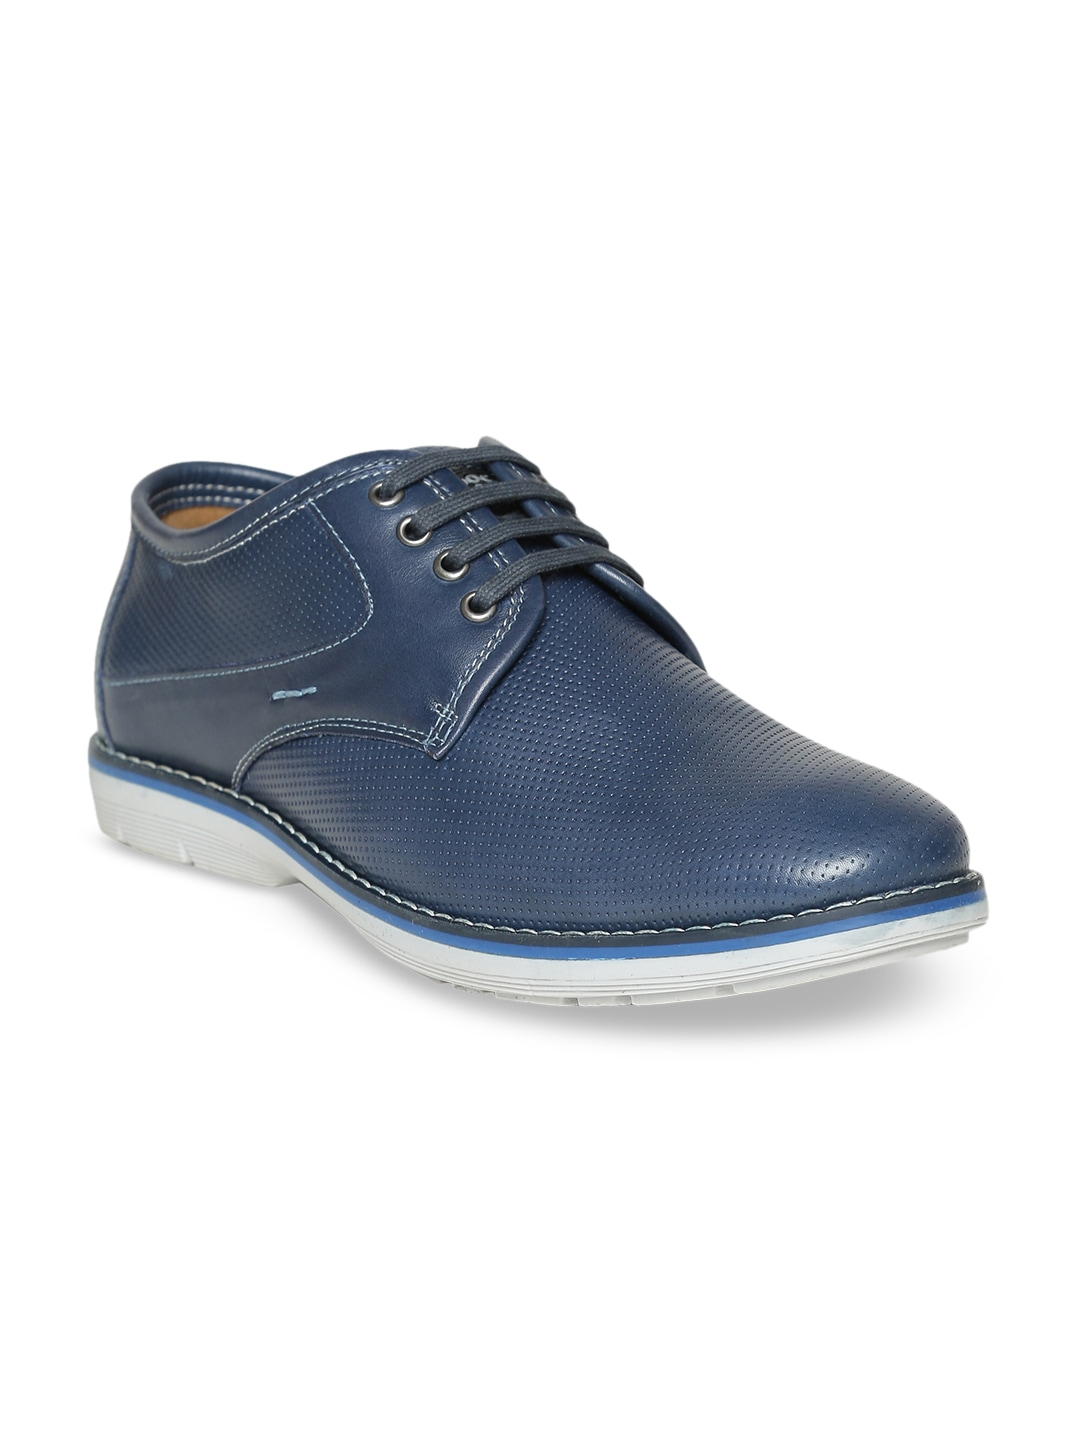 huge discount e53c5 09623 Size No 6 Shoes Casual - Buy Size No 6 Shoes Casual online in India